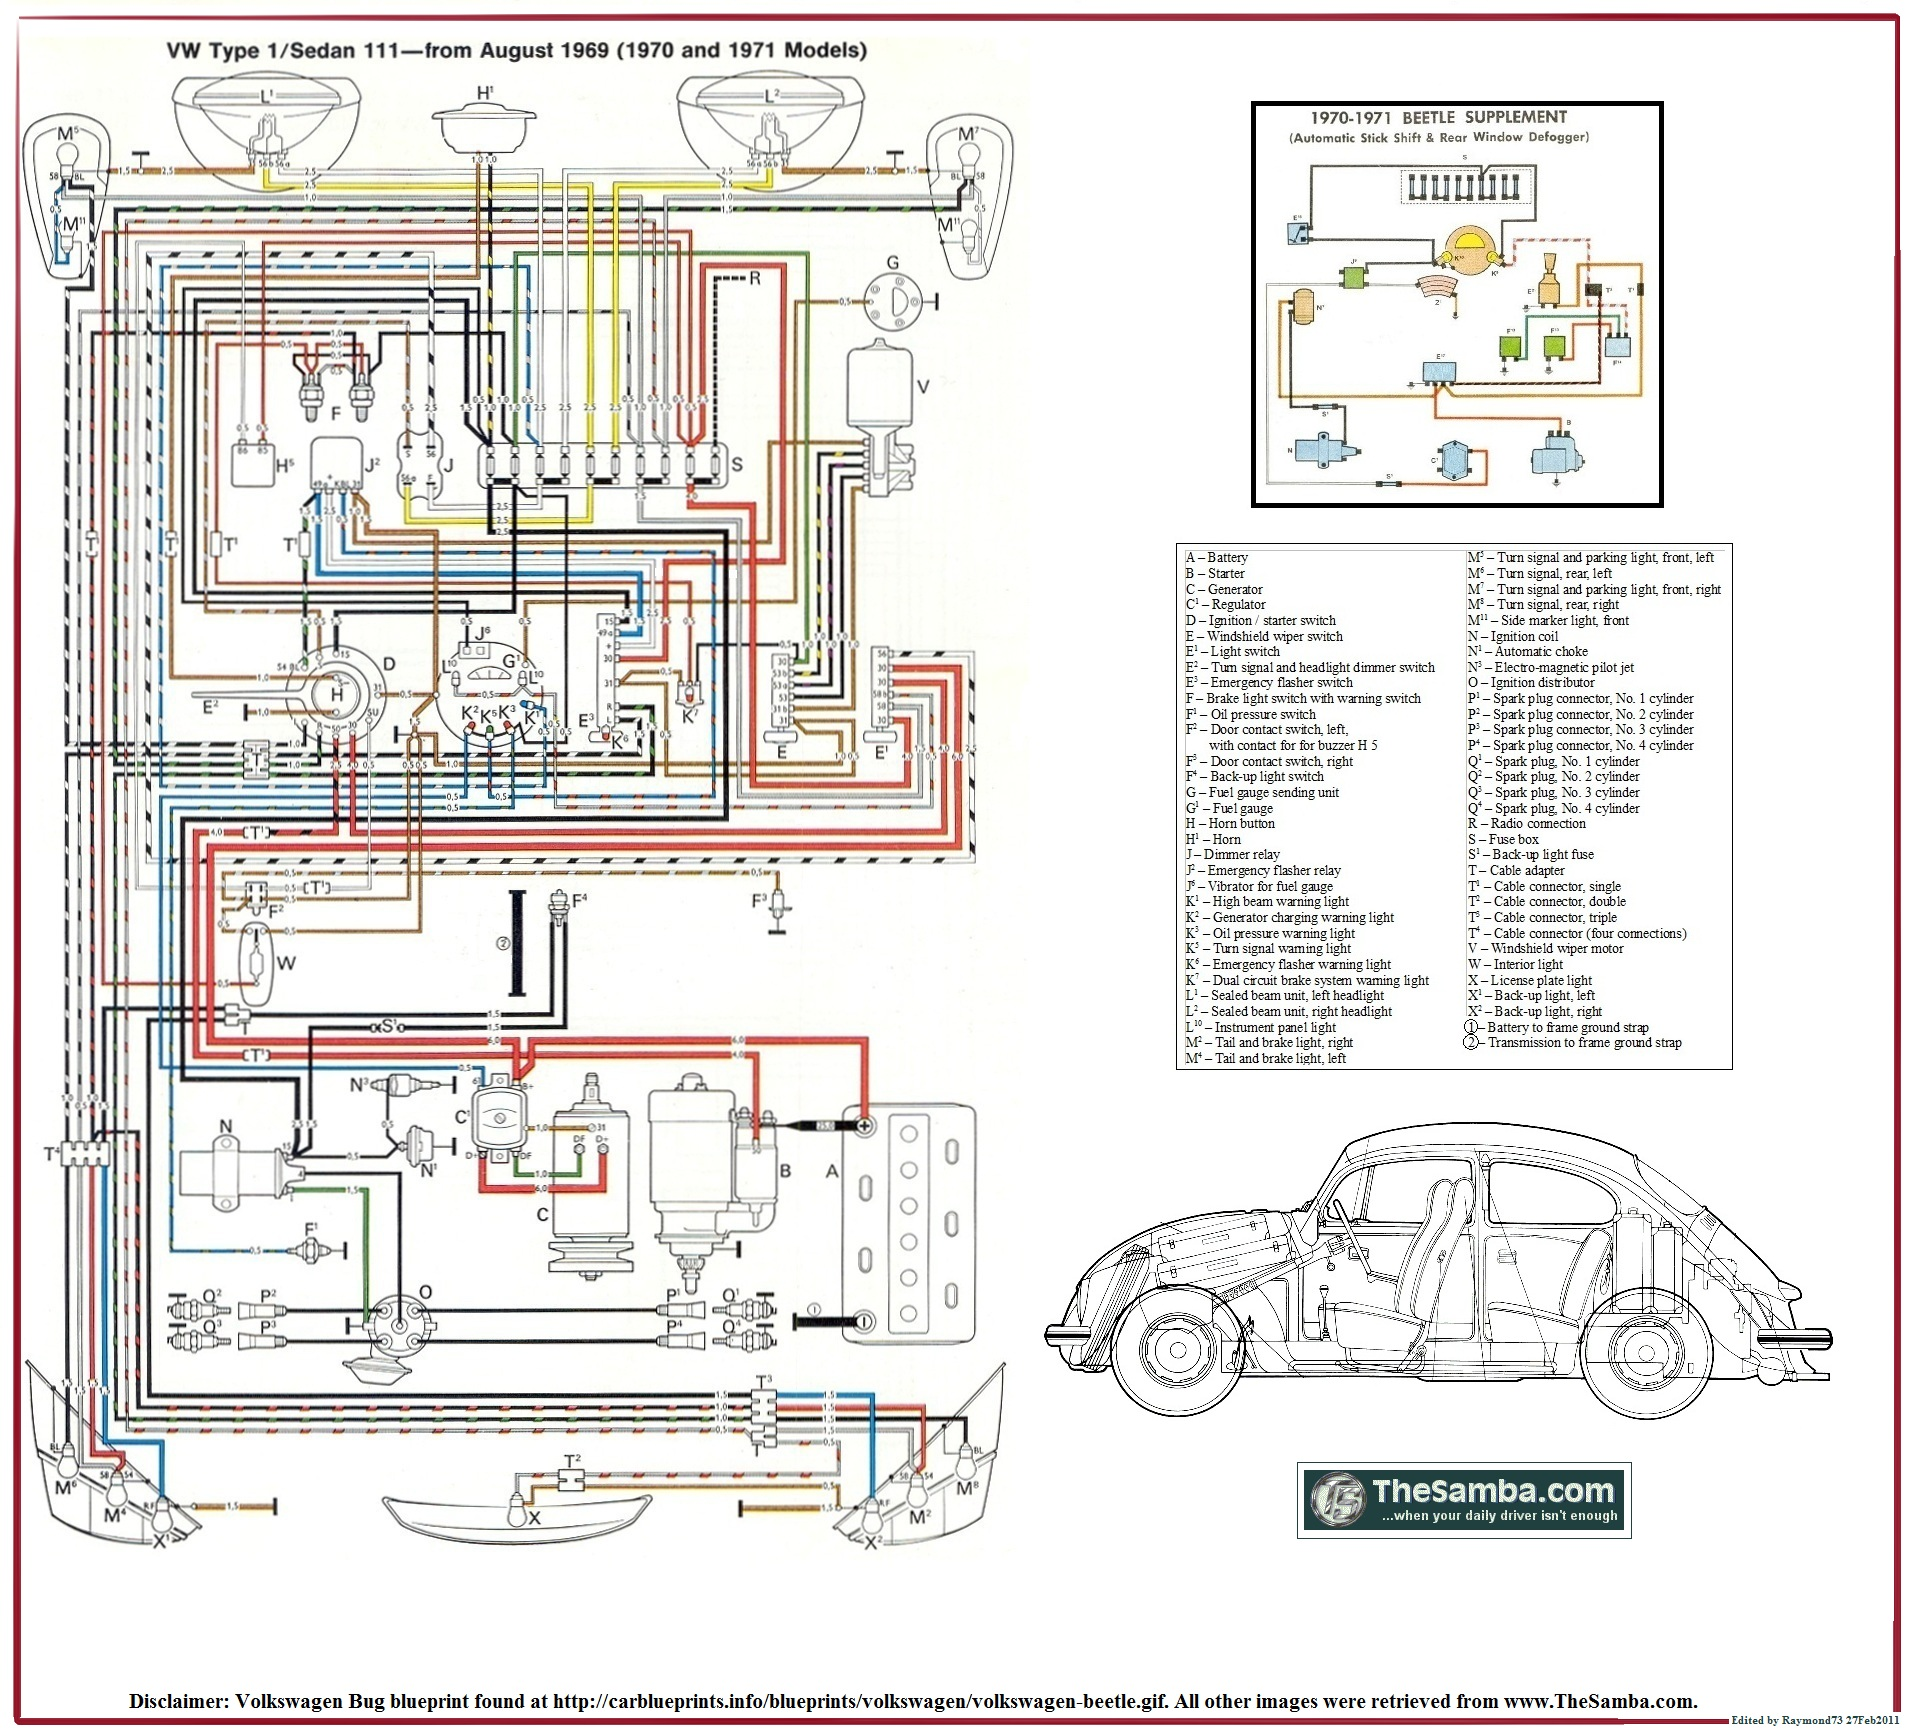 1970 VW Beetle Wiring Diagram on ford f100 wiper switch